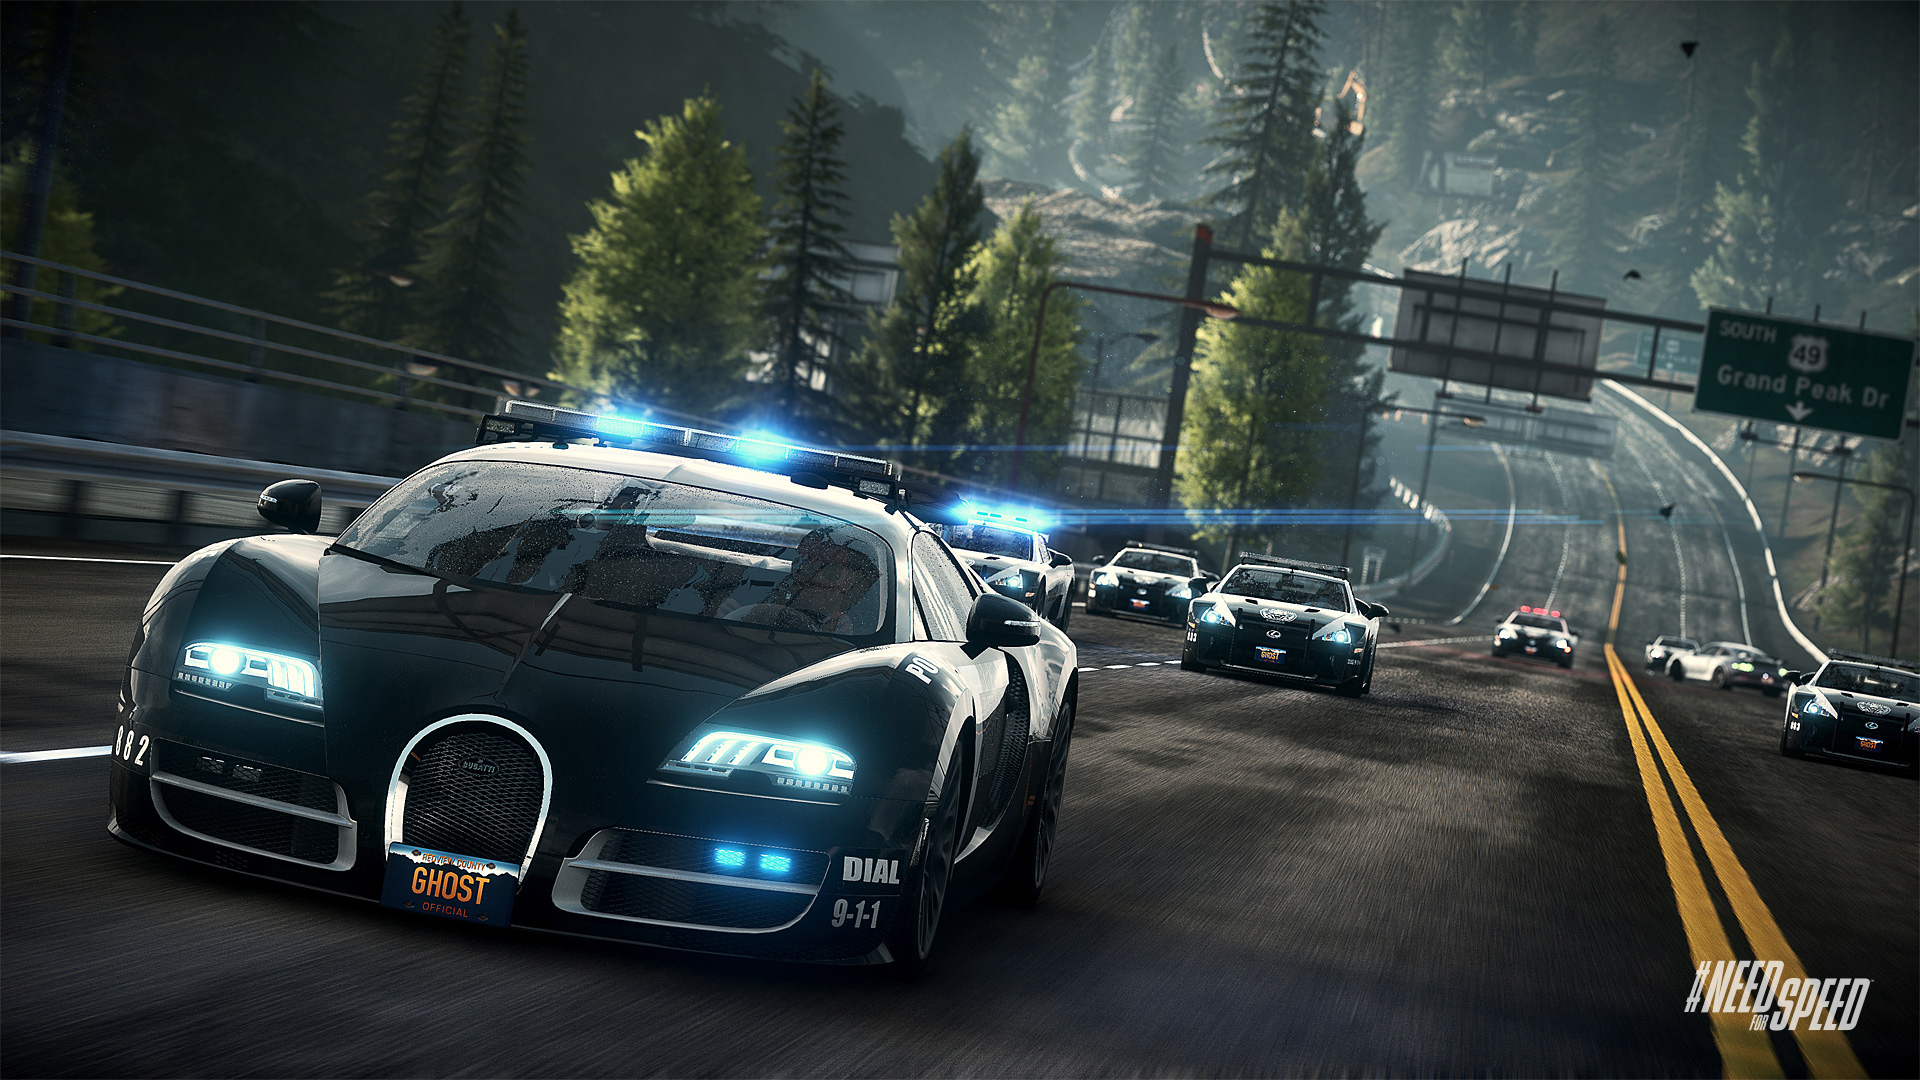 need for speed: rivals gameplay released on xbox one and playstation 4